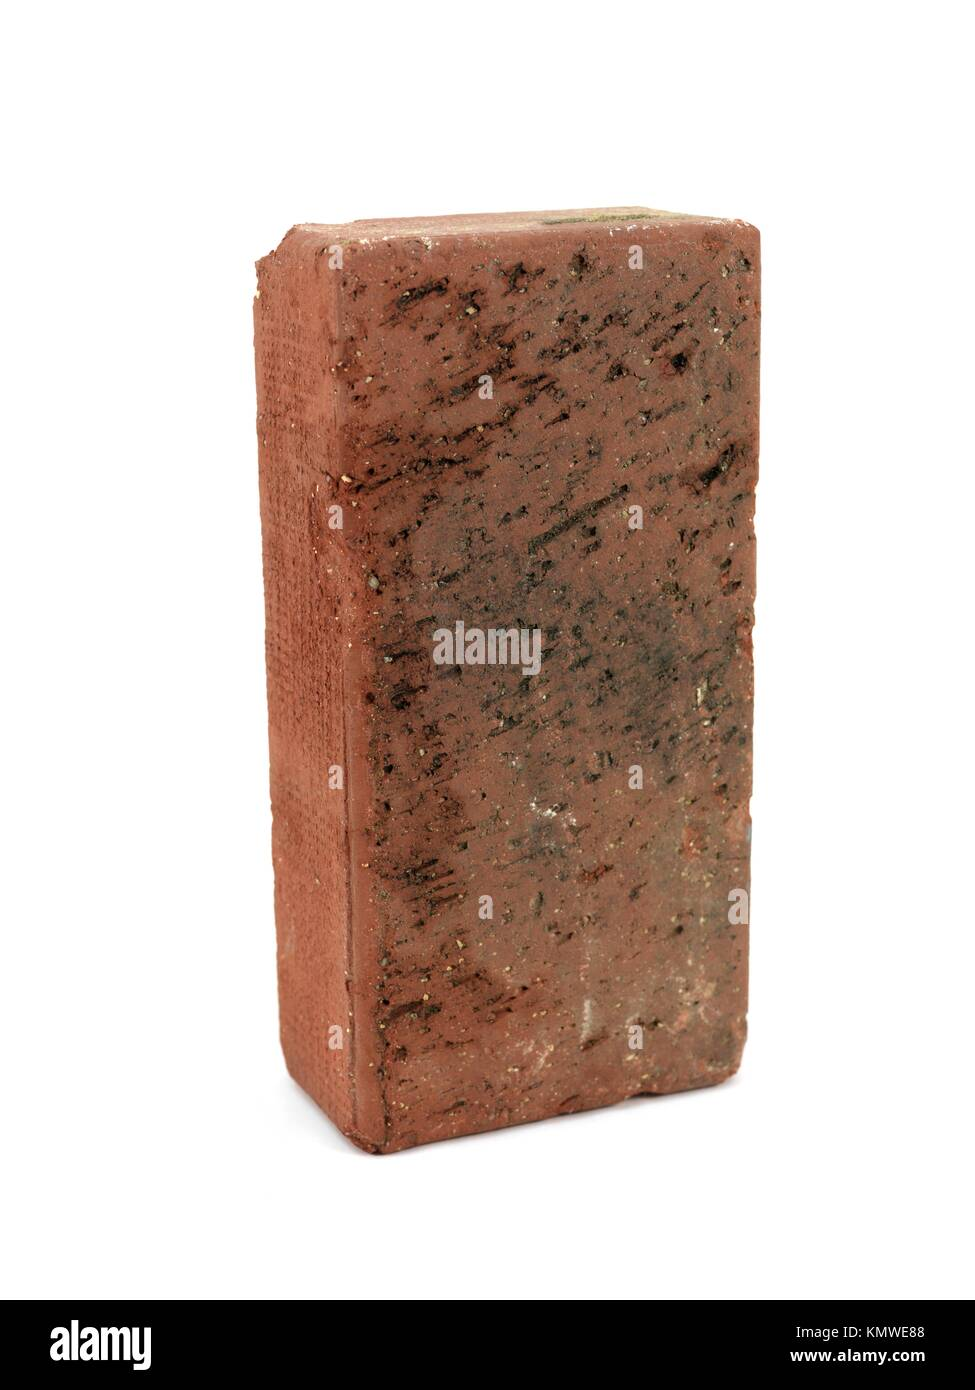 A red brick isolated against a white background - Stock Image